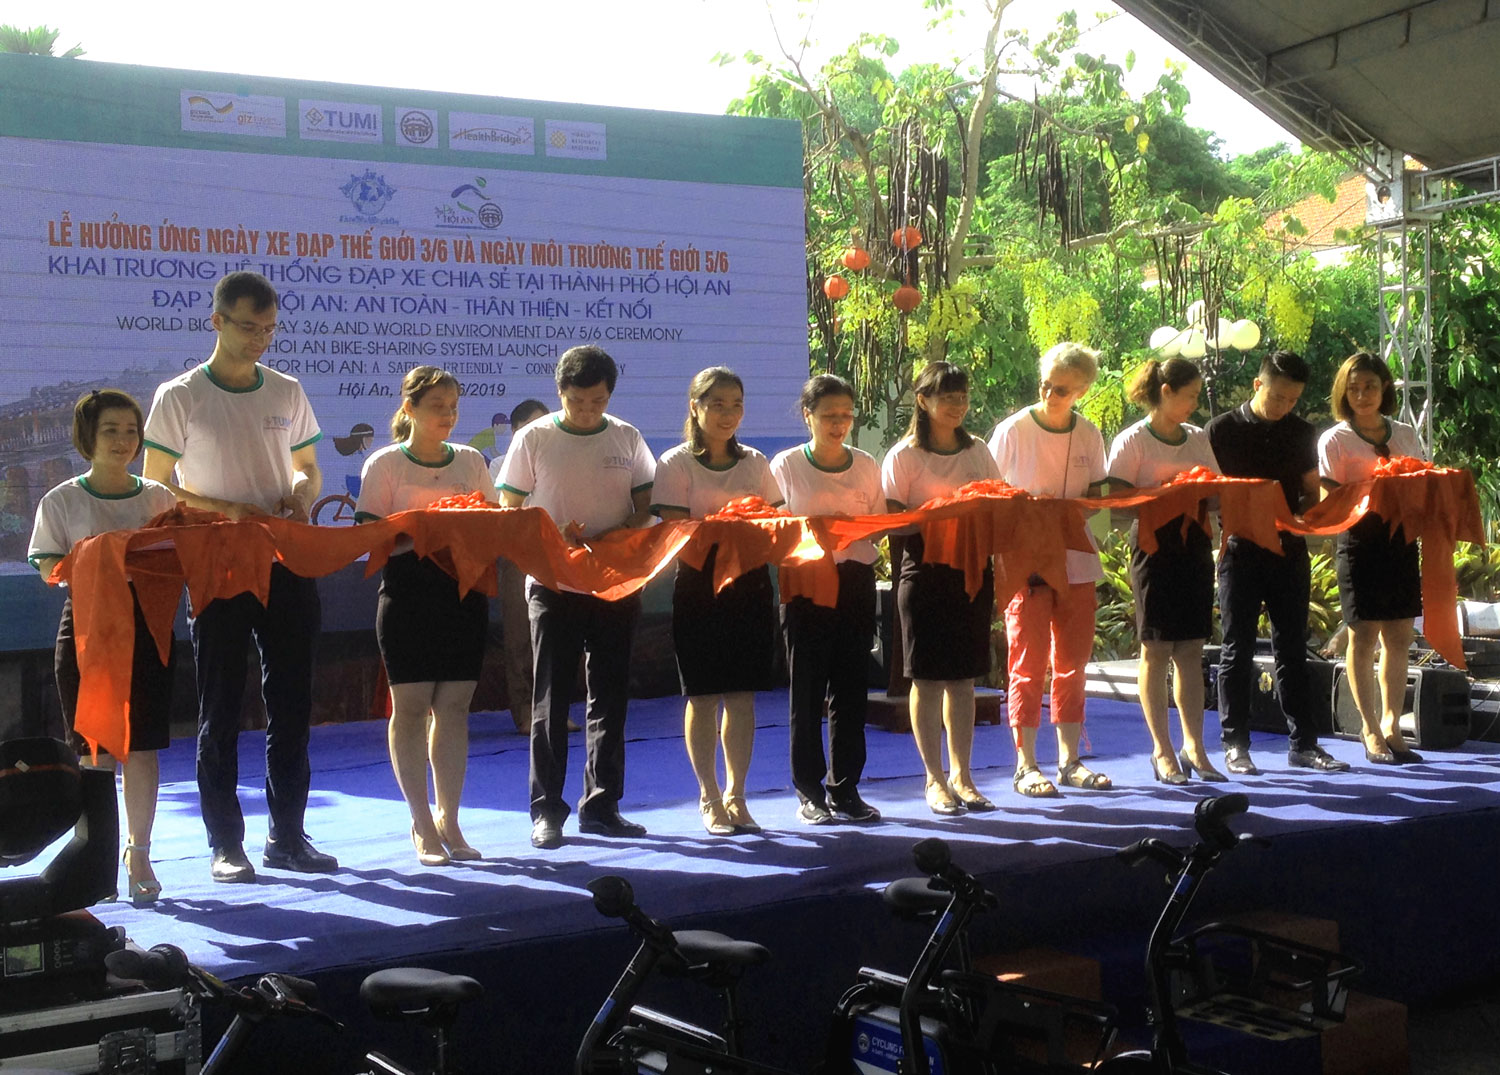 Hoi An city: Bicycle sharing scheme hits the road